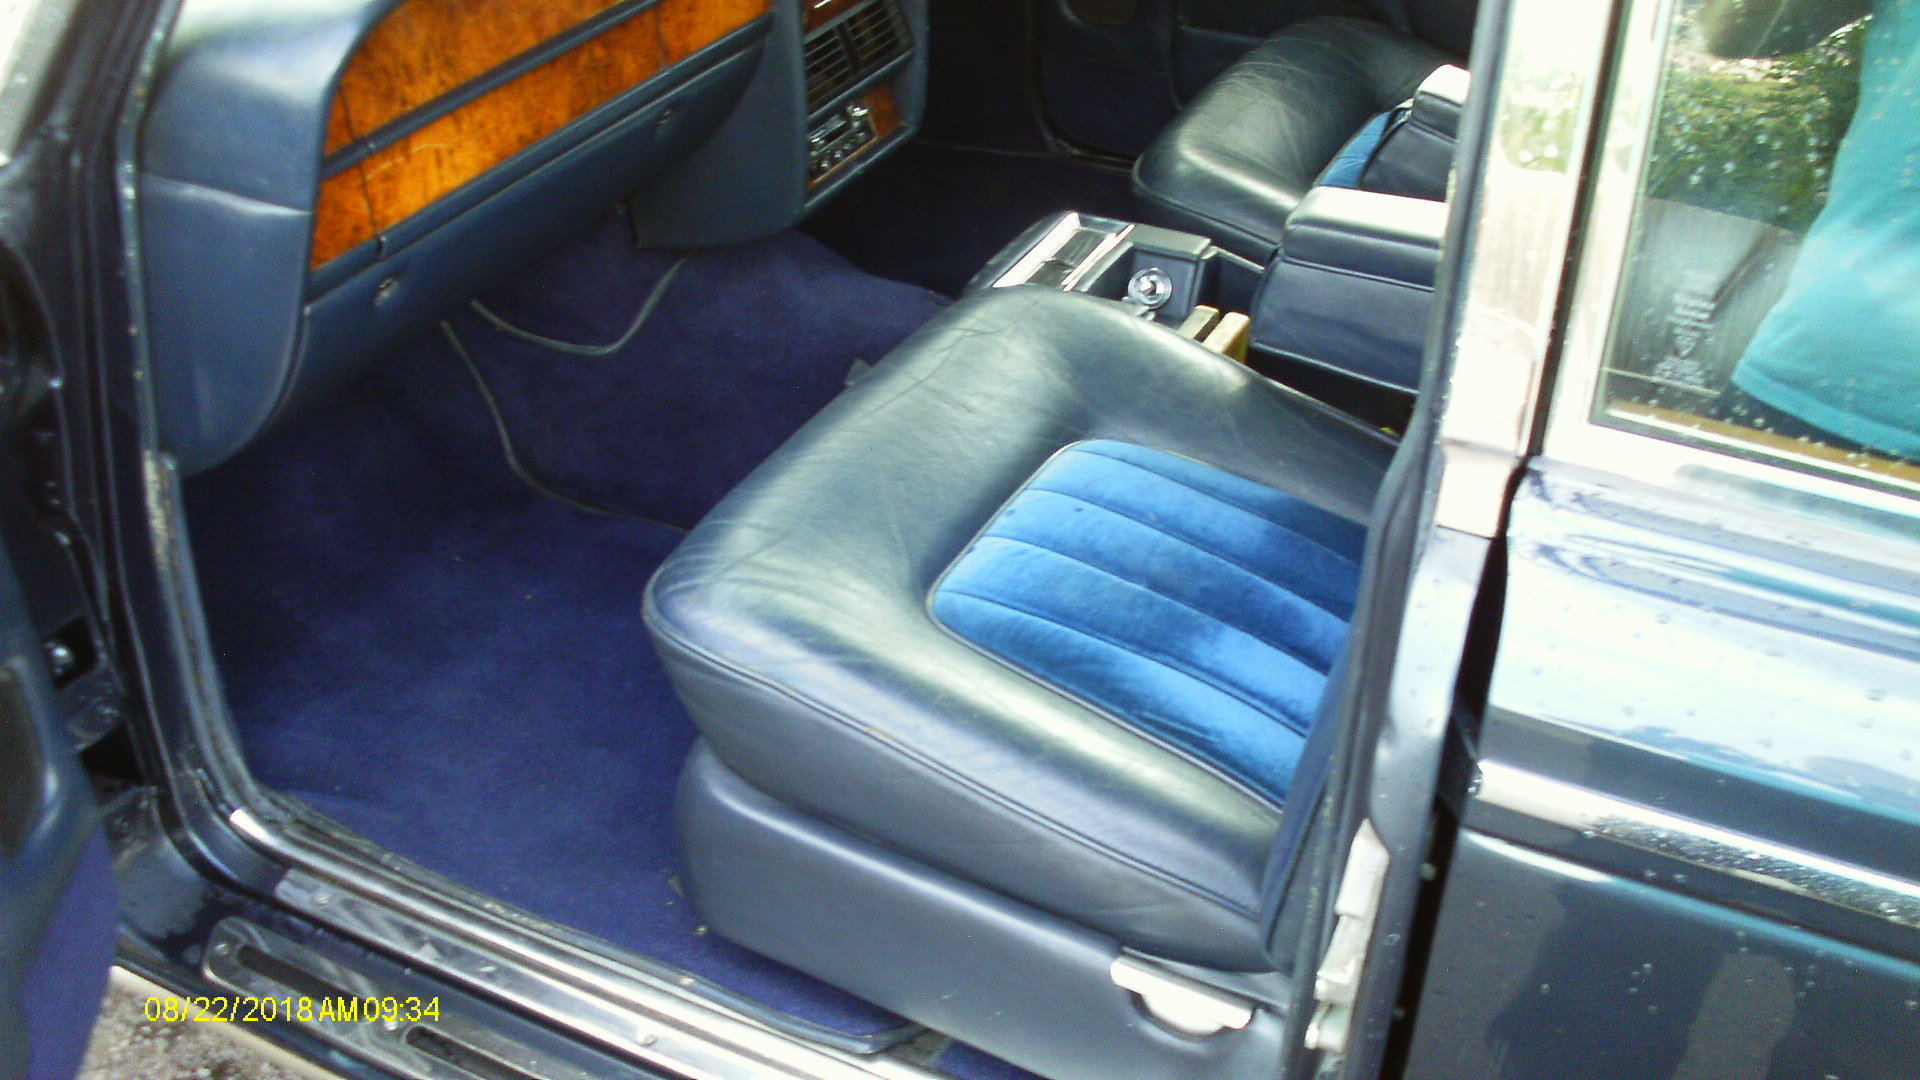 1979 rolls royce shadow 2  may p/x  why For Sale (picture 4 of 6)